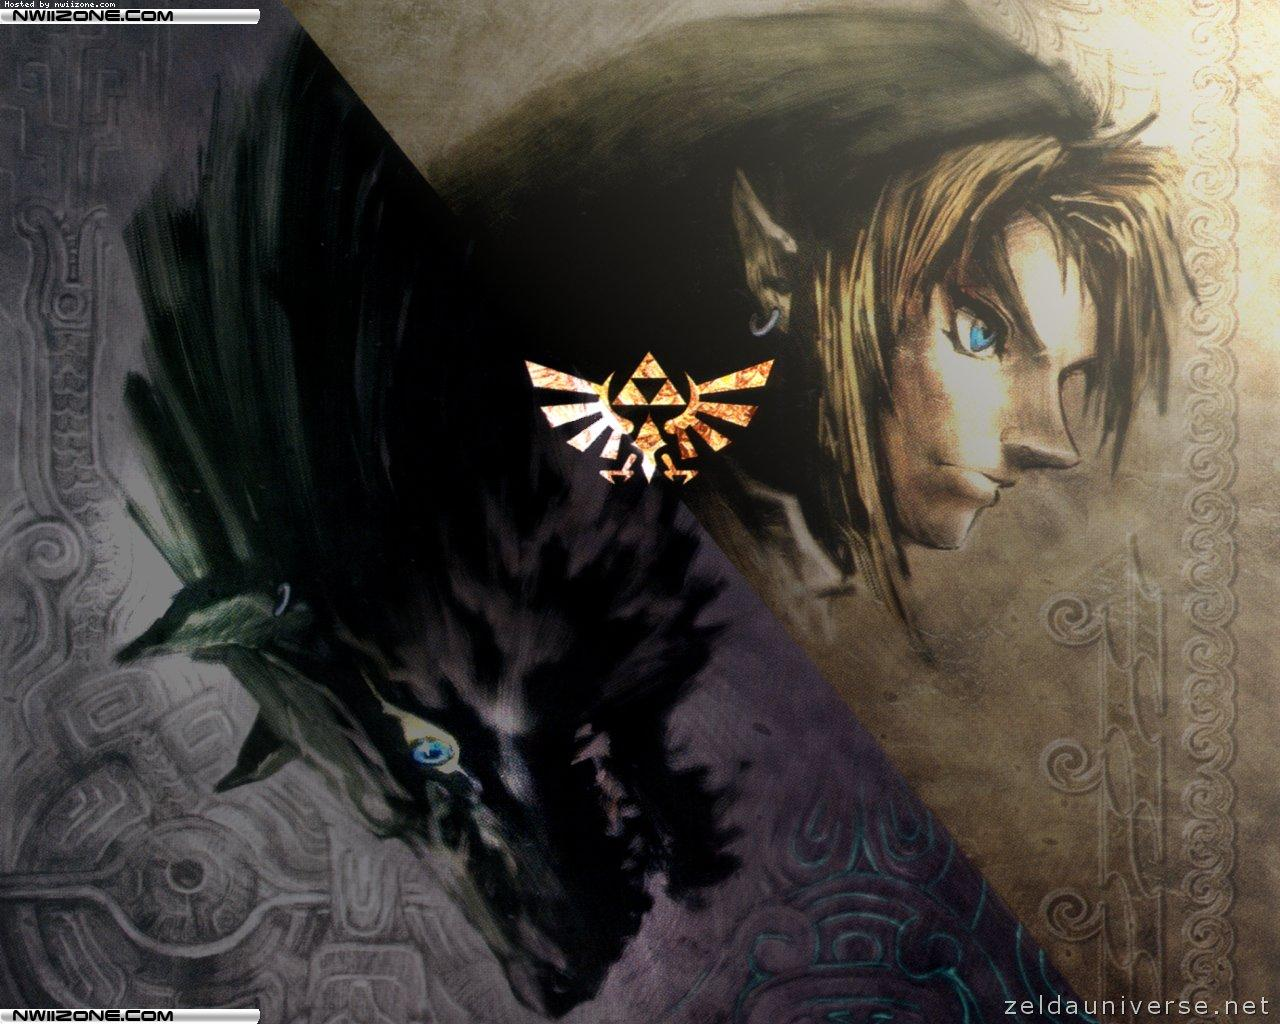 The_Legend_of_Zelda_Twilight_Princess_wii_wallpaper3